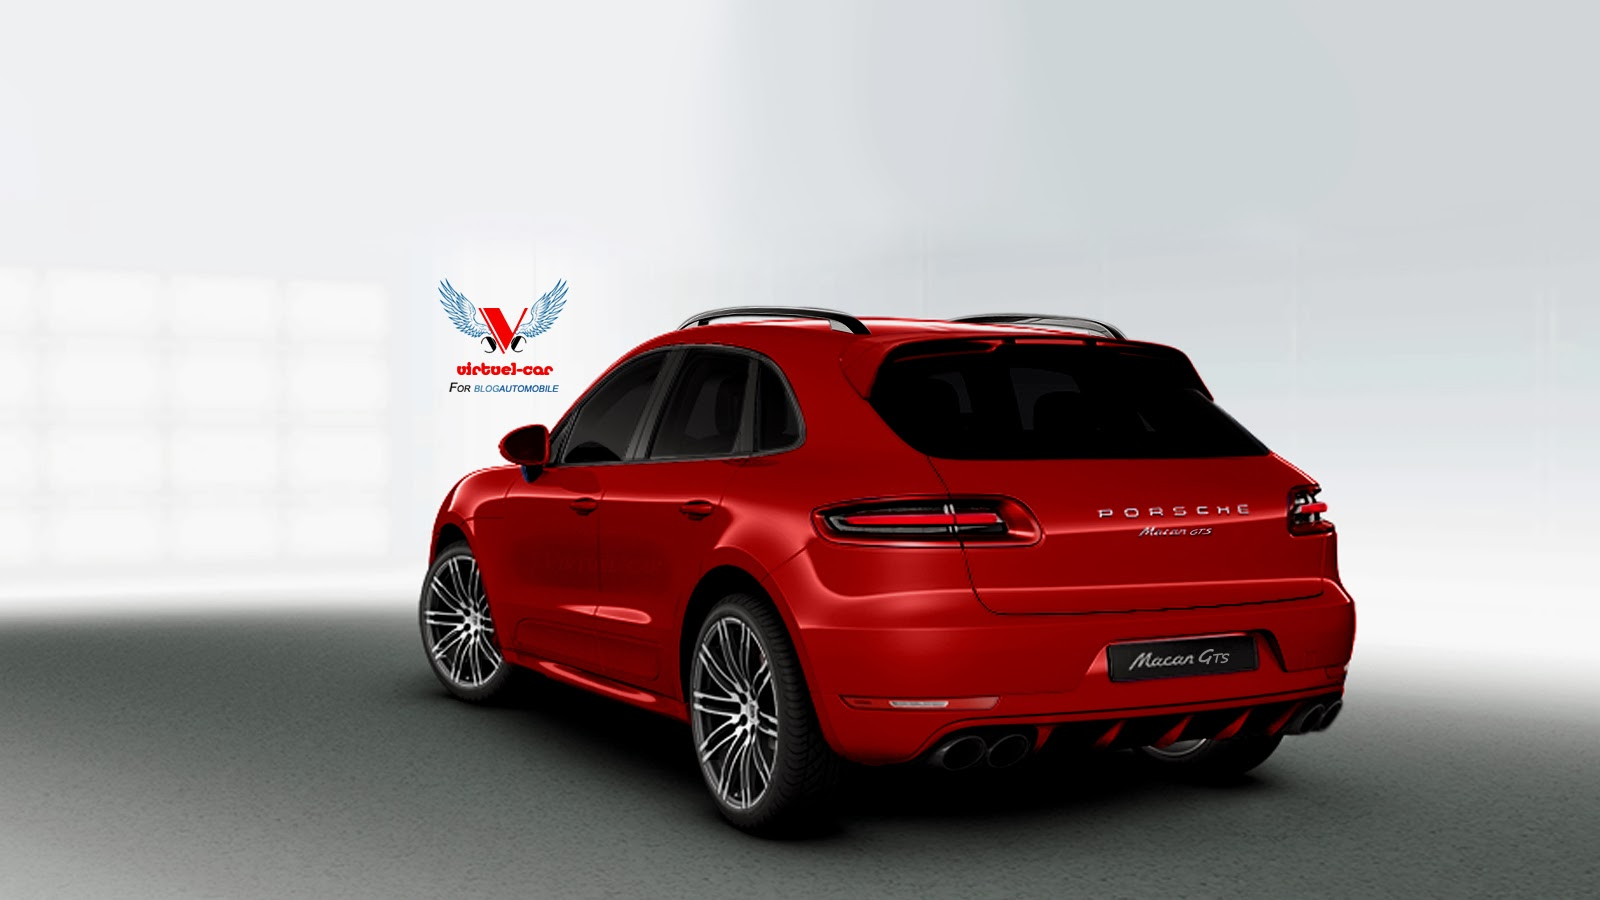 Porsche Macan Gts Rendered In Red Autoevolution